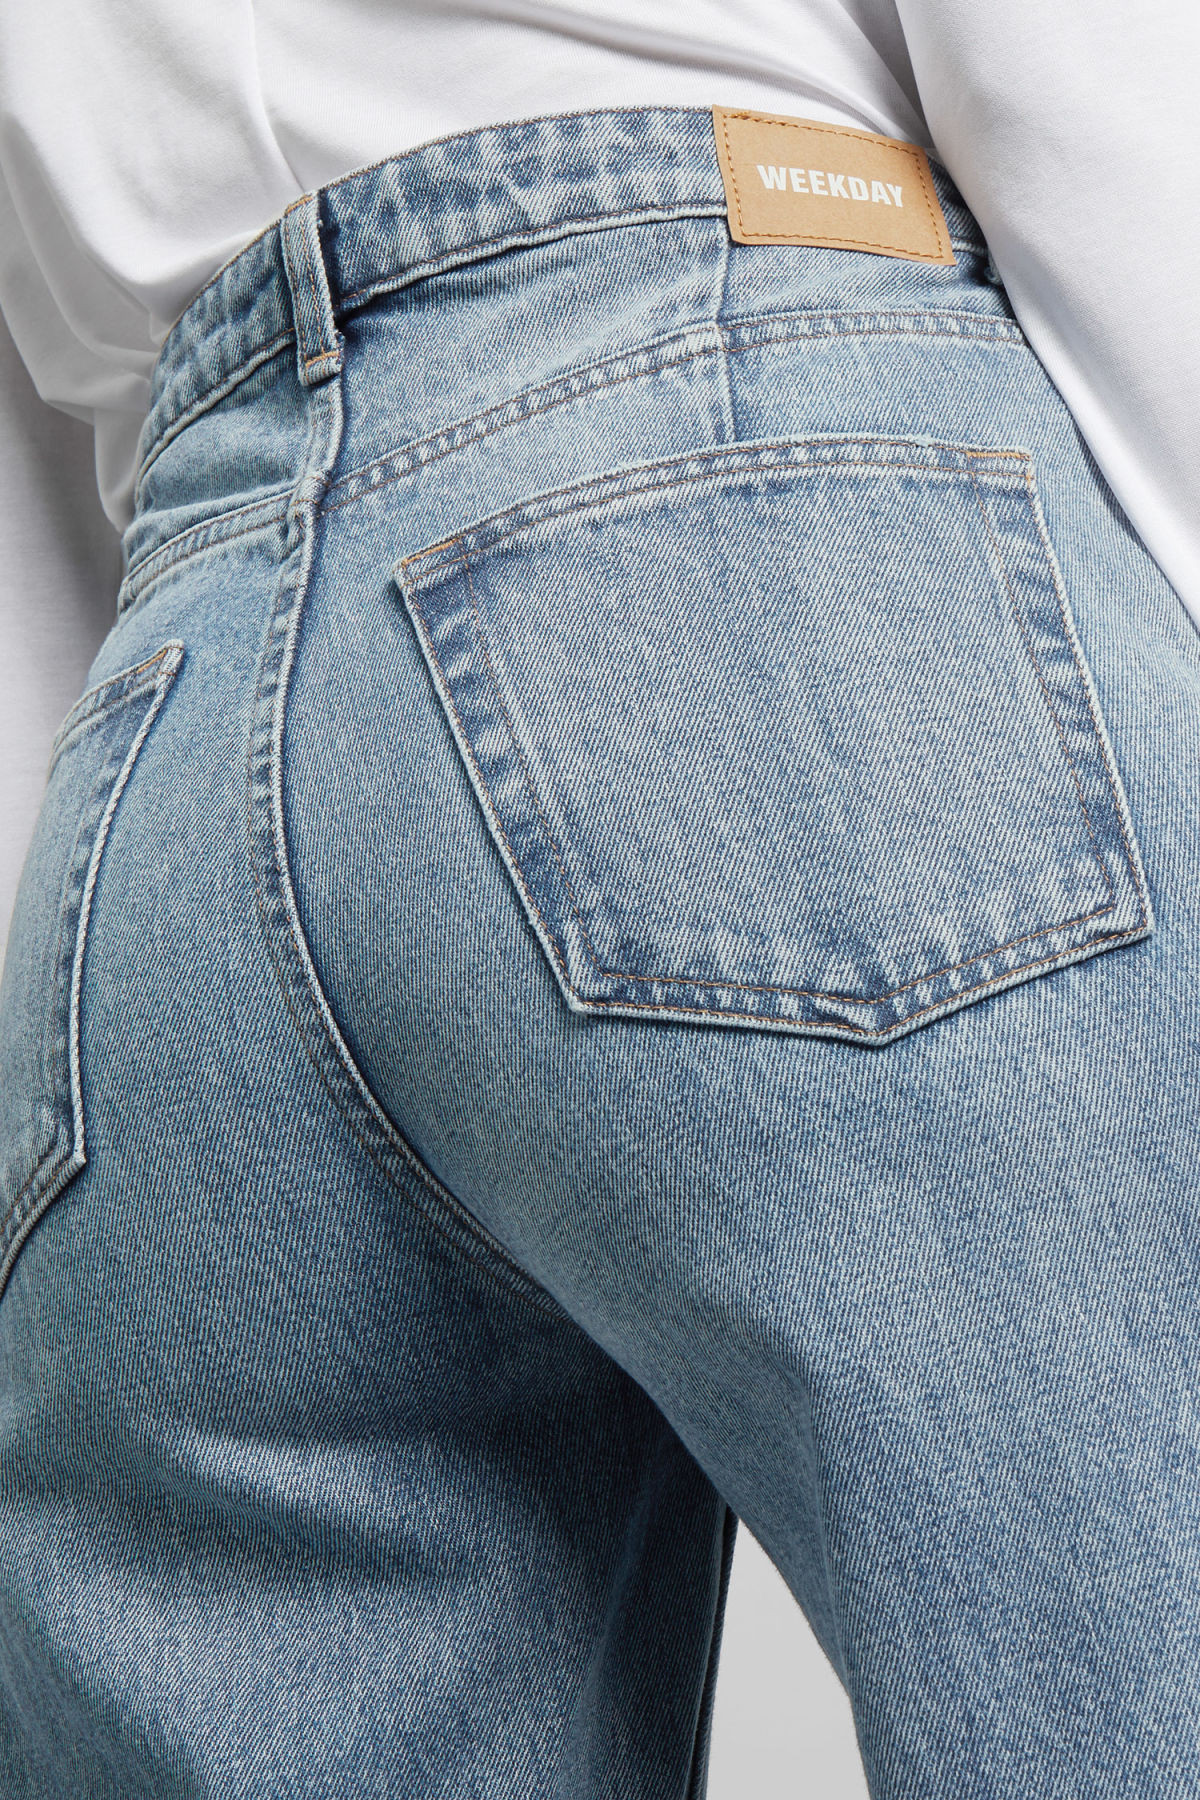 Model side image of Weekday ace san fran blue jeans in blue